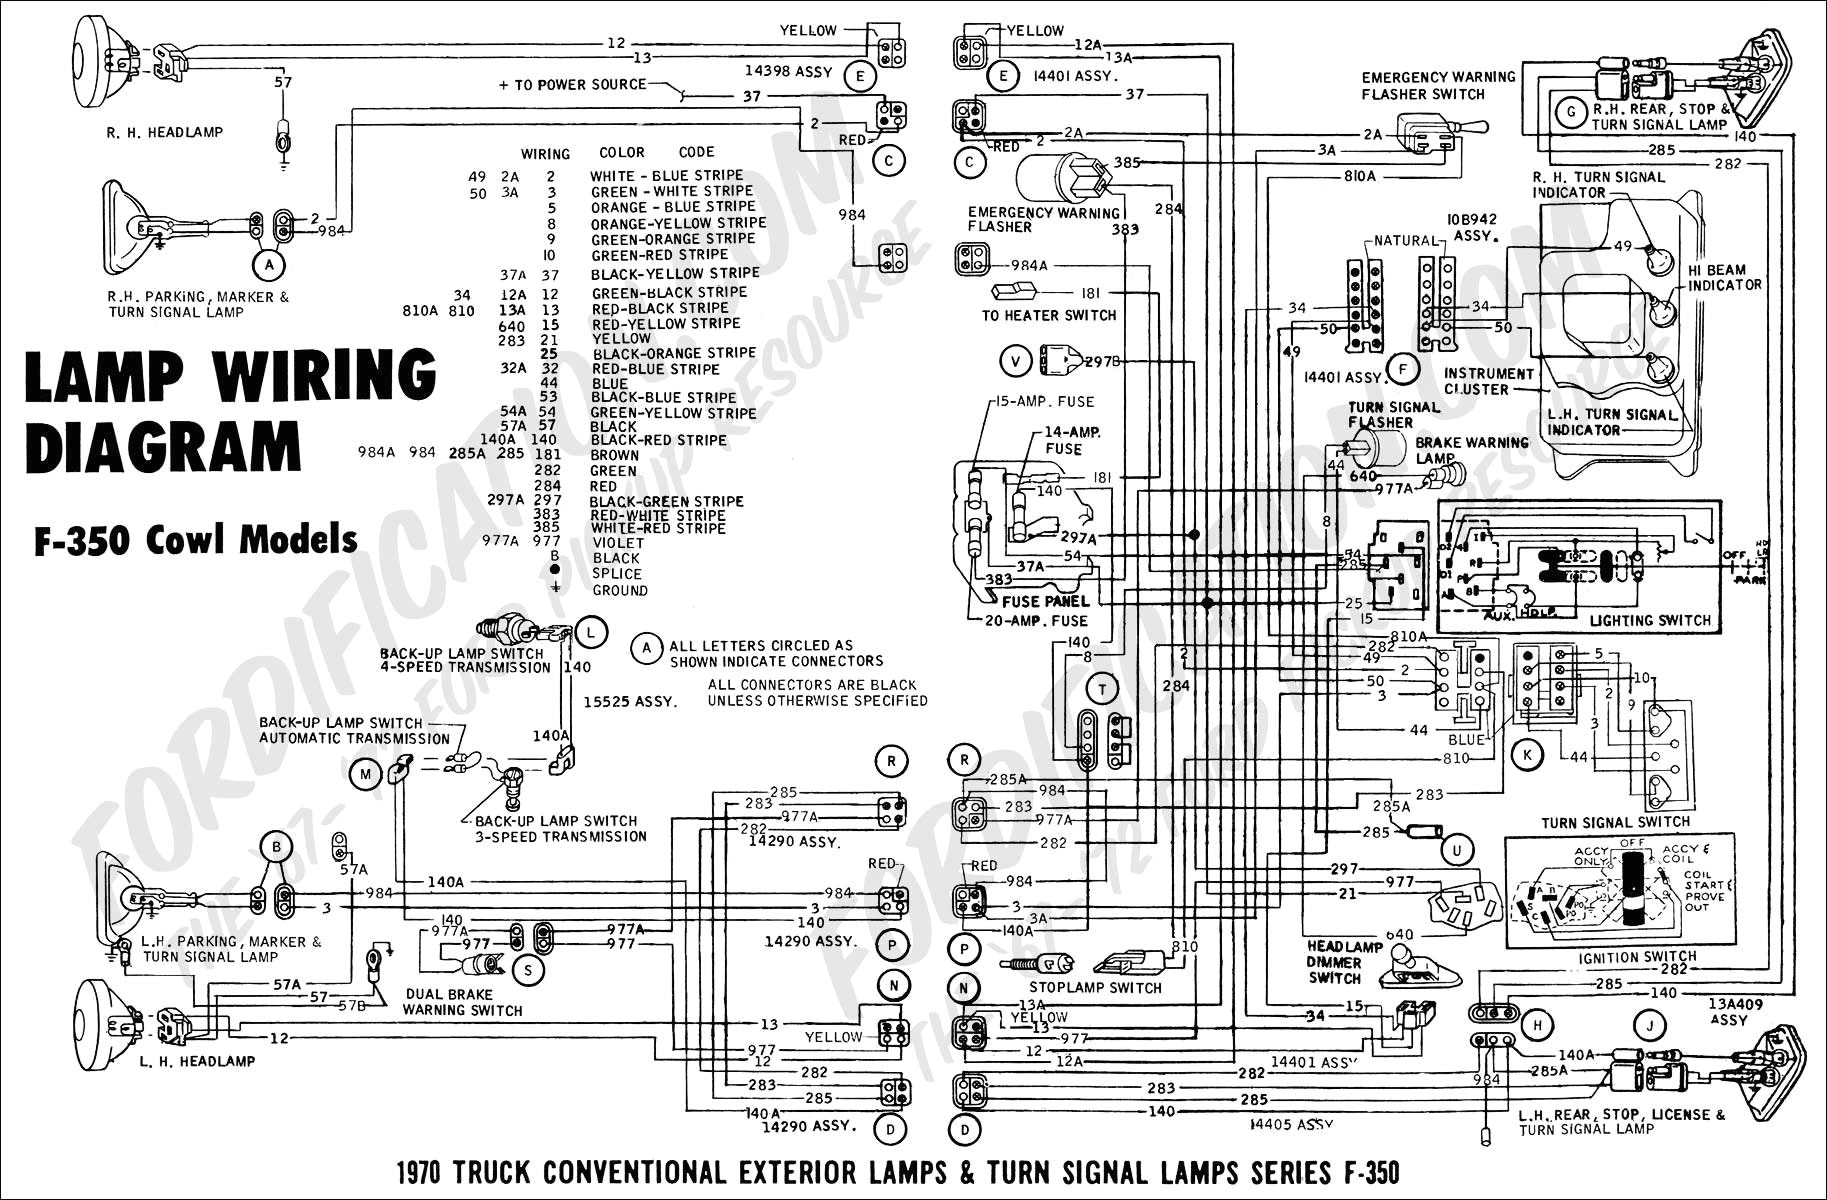 hight resolution of 2000 ford f350 wiring best site wiring diagram 2000 ford explorer wiring diagram pdf 2000 ford focus wiring diagram